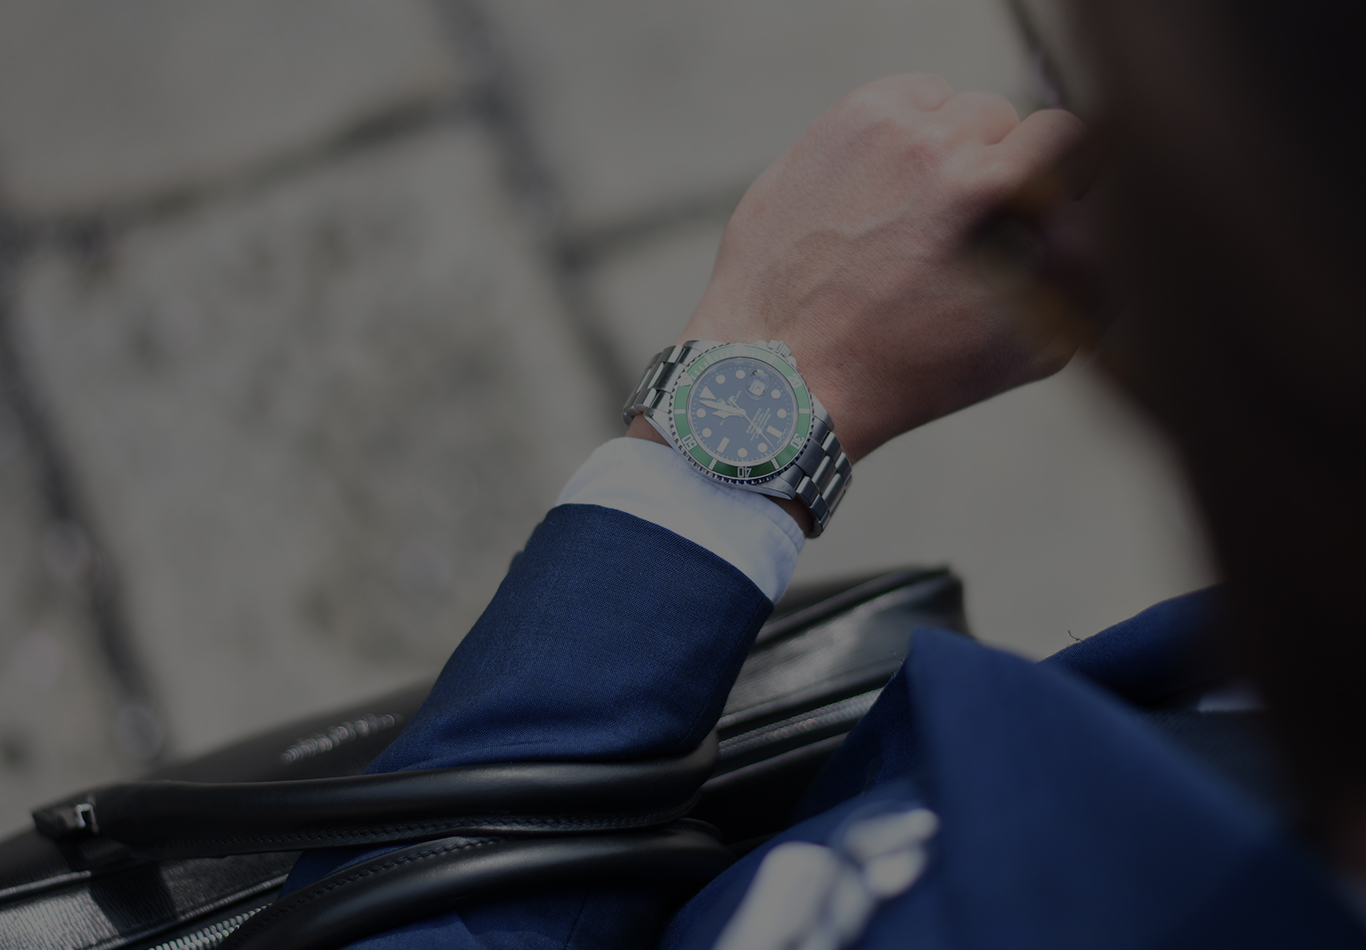 A watch on a person's wrist is in focus in the picture